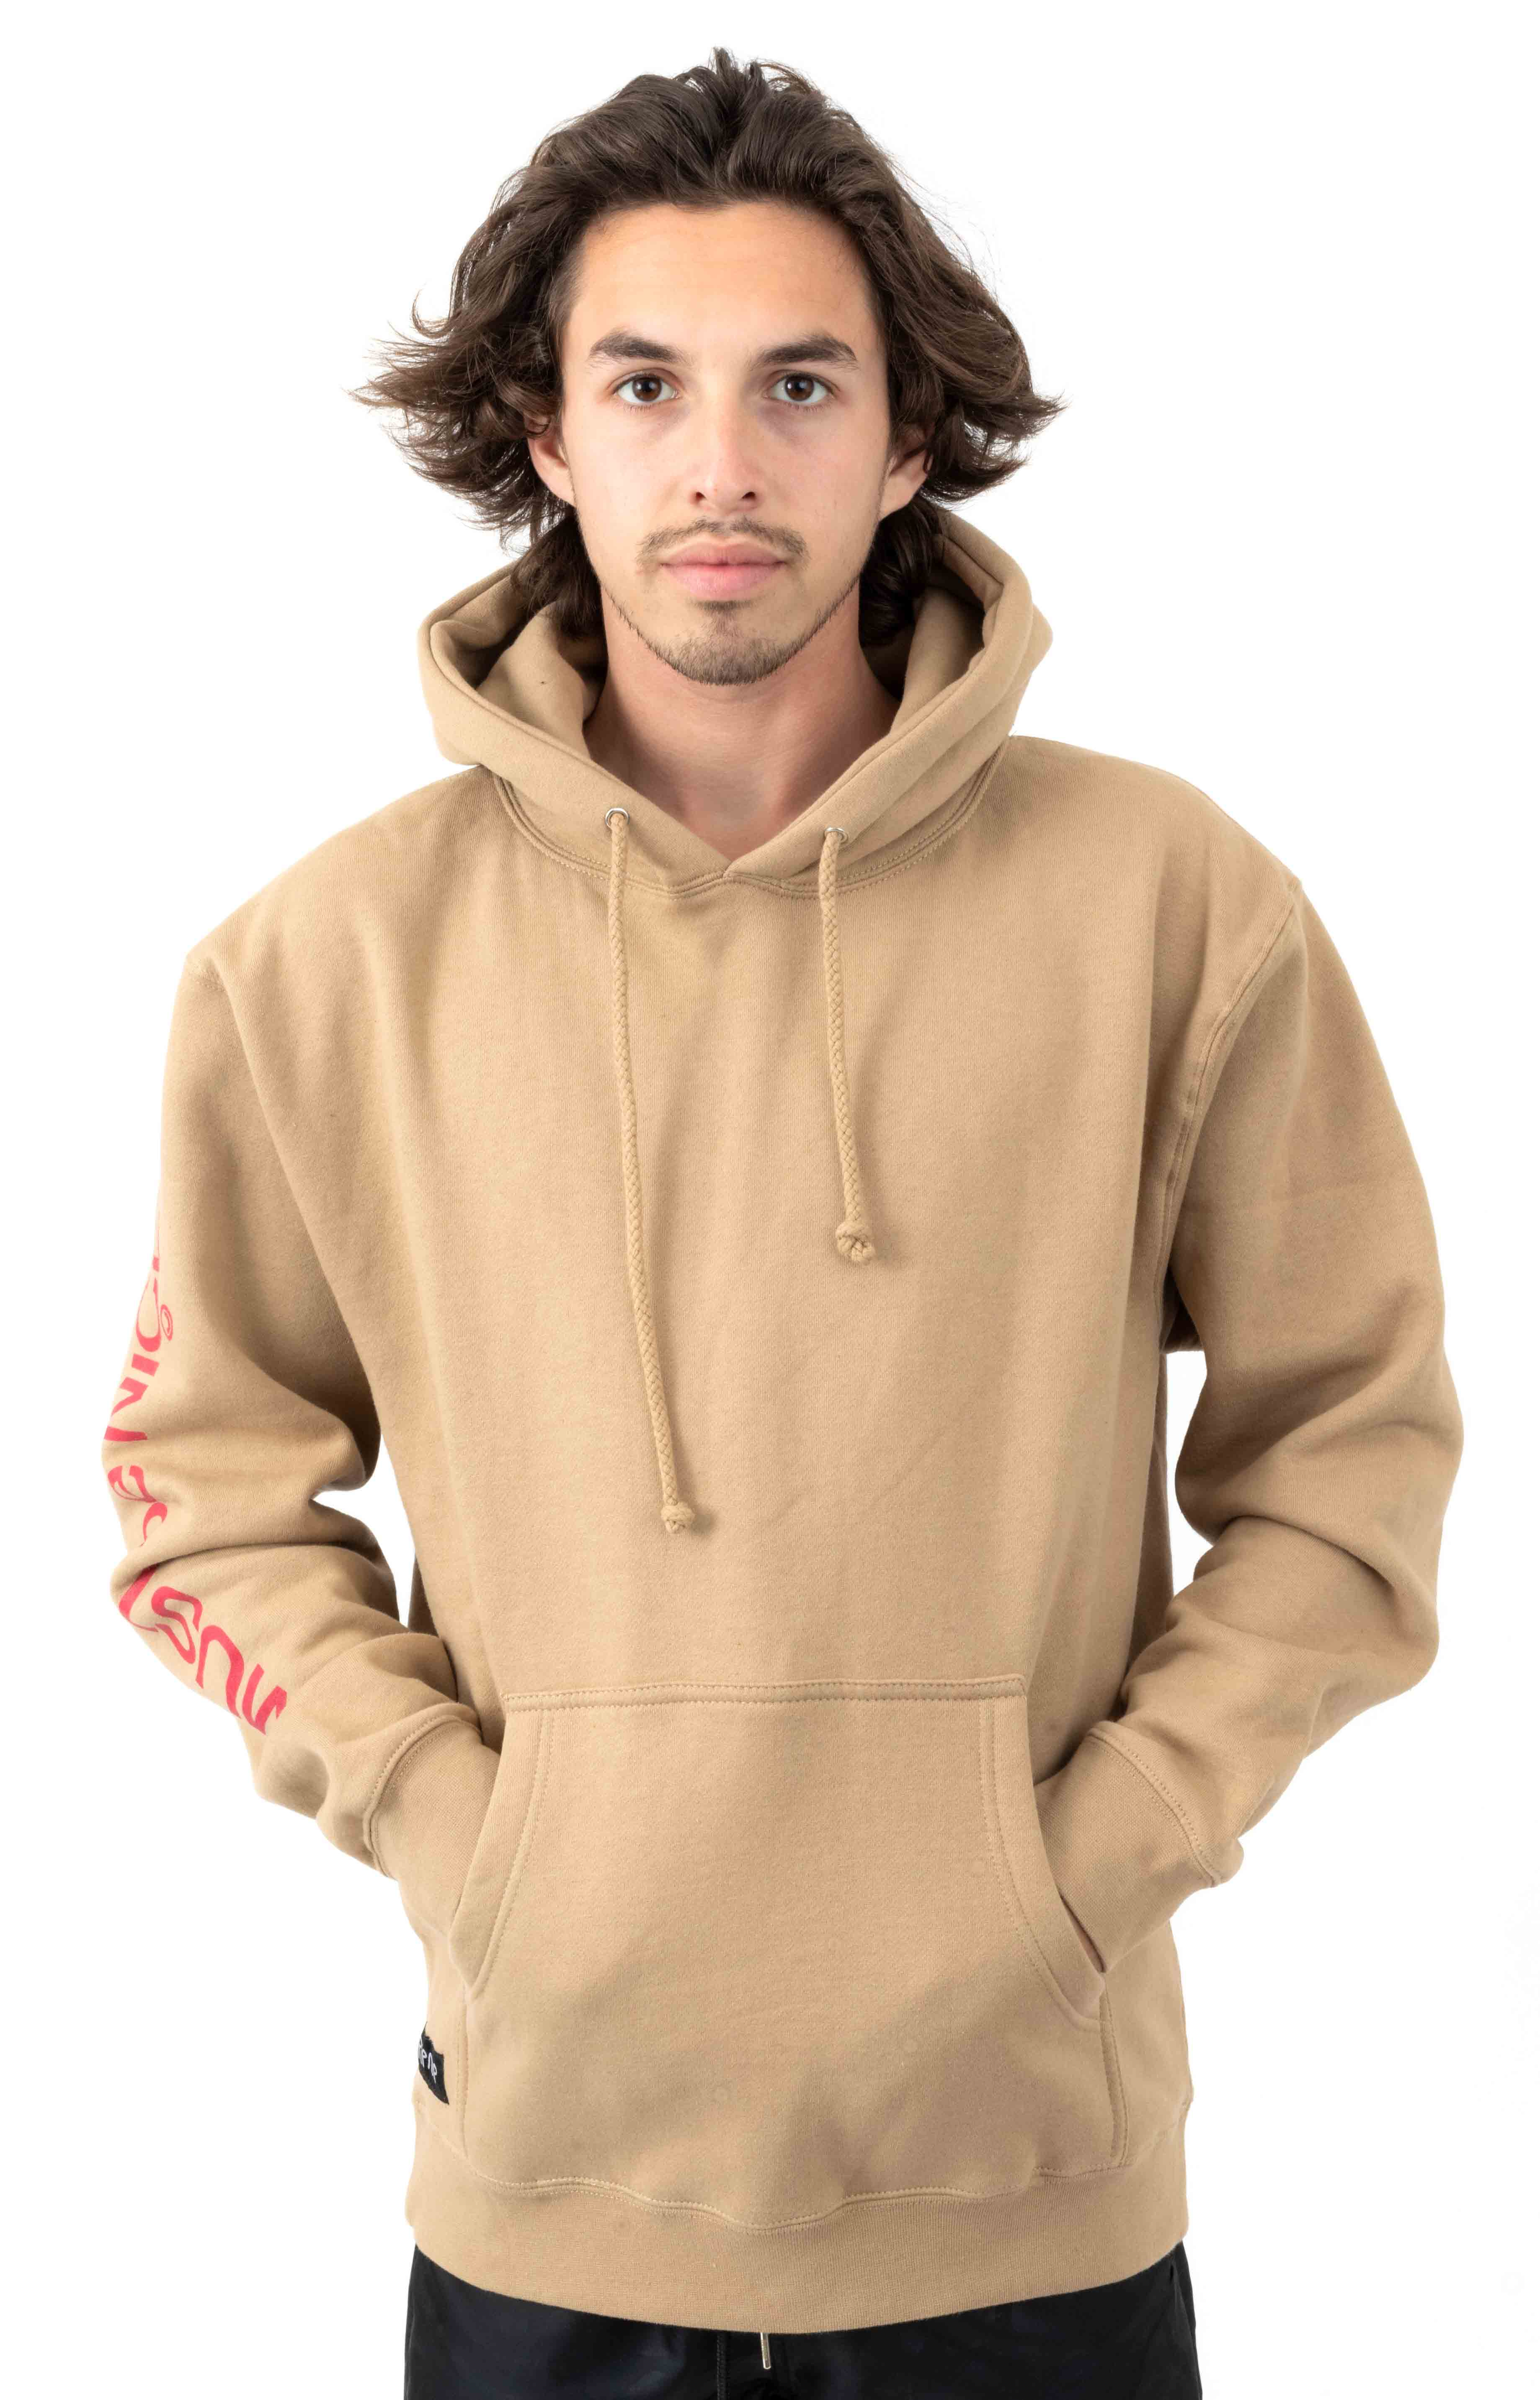 Fouquet Madonna Pullover Hoodie - Tan 2